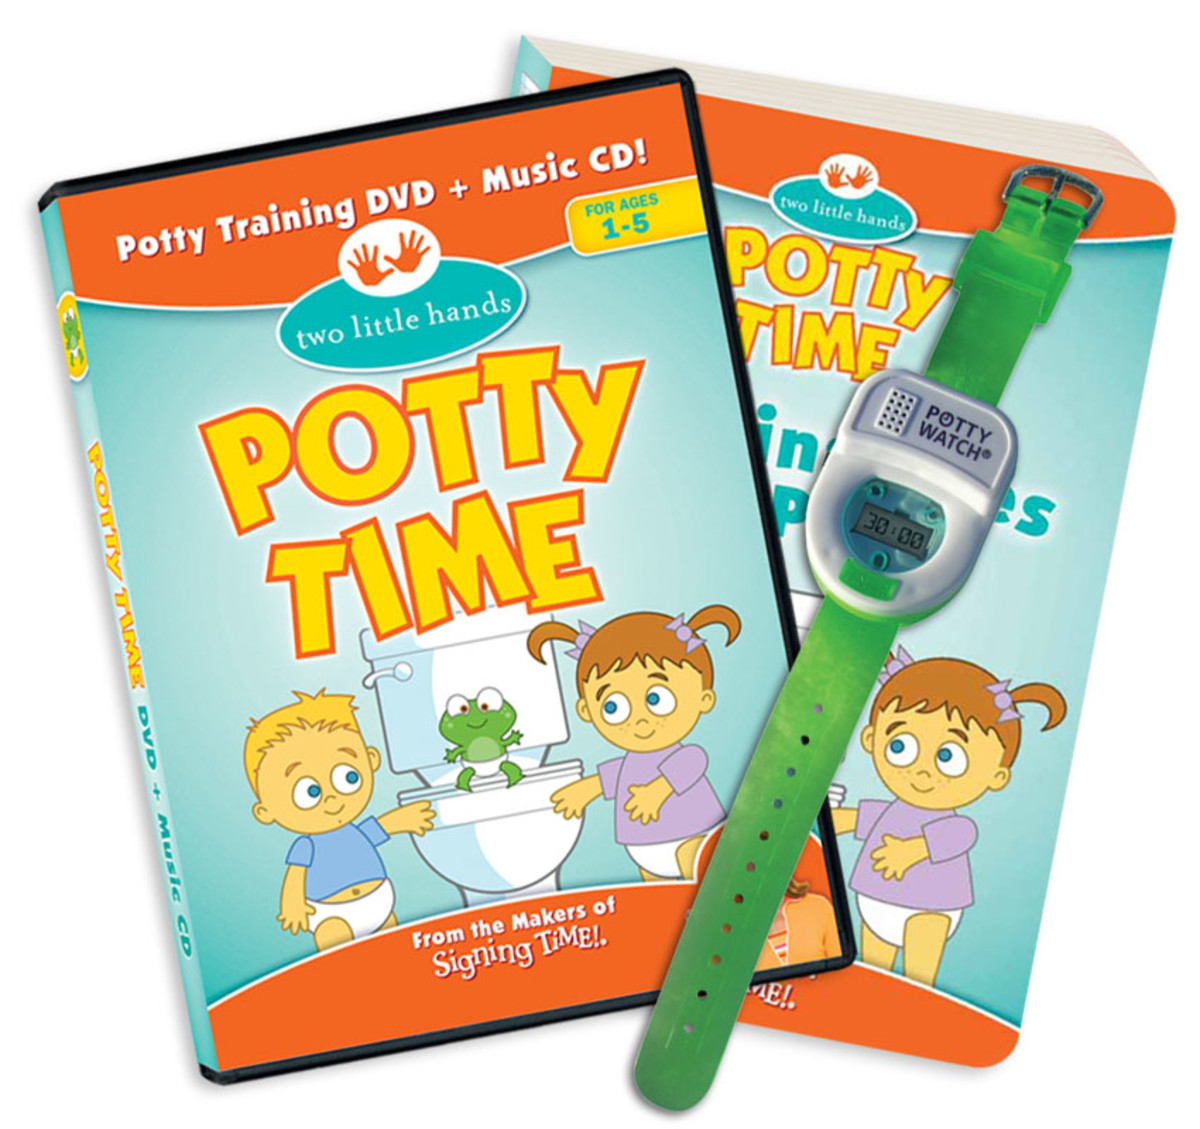 PottyTime_DVD-CD-BOOK-WATCH